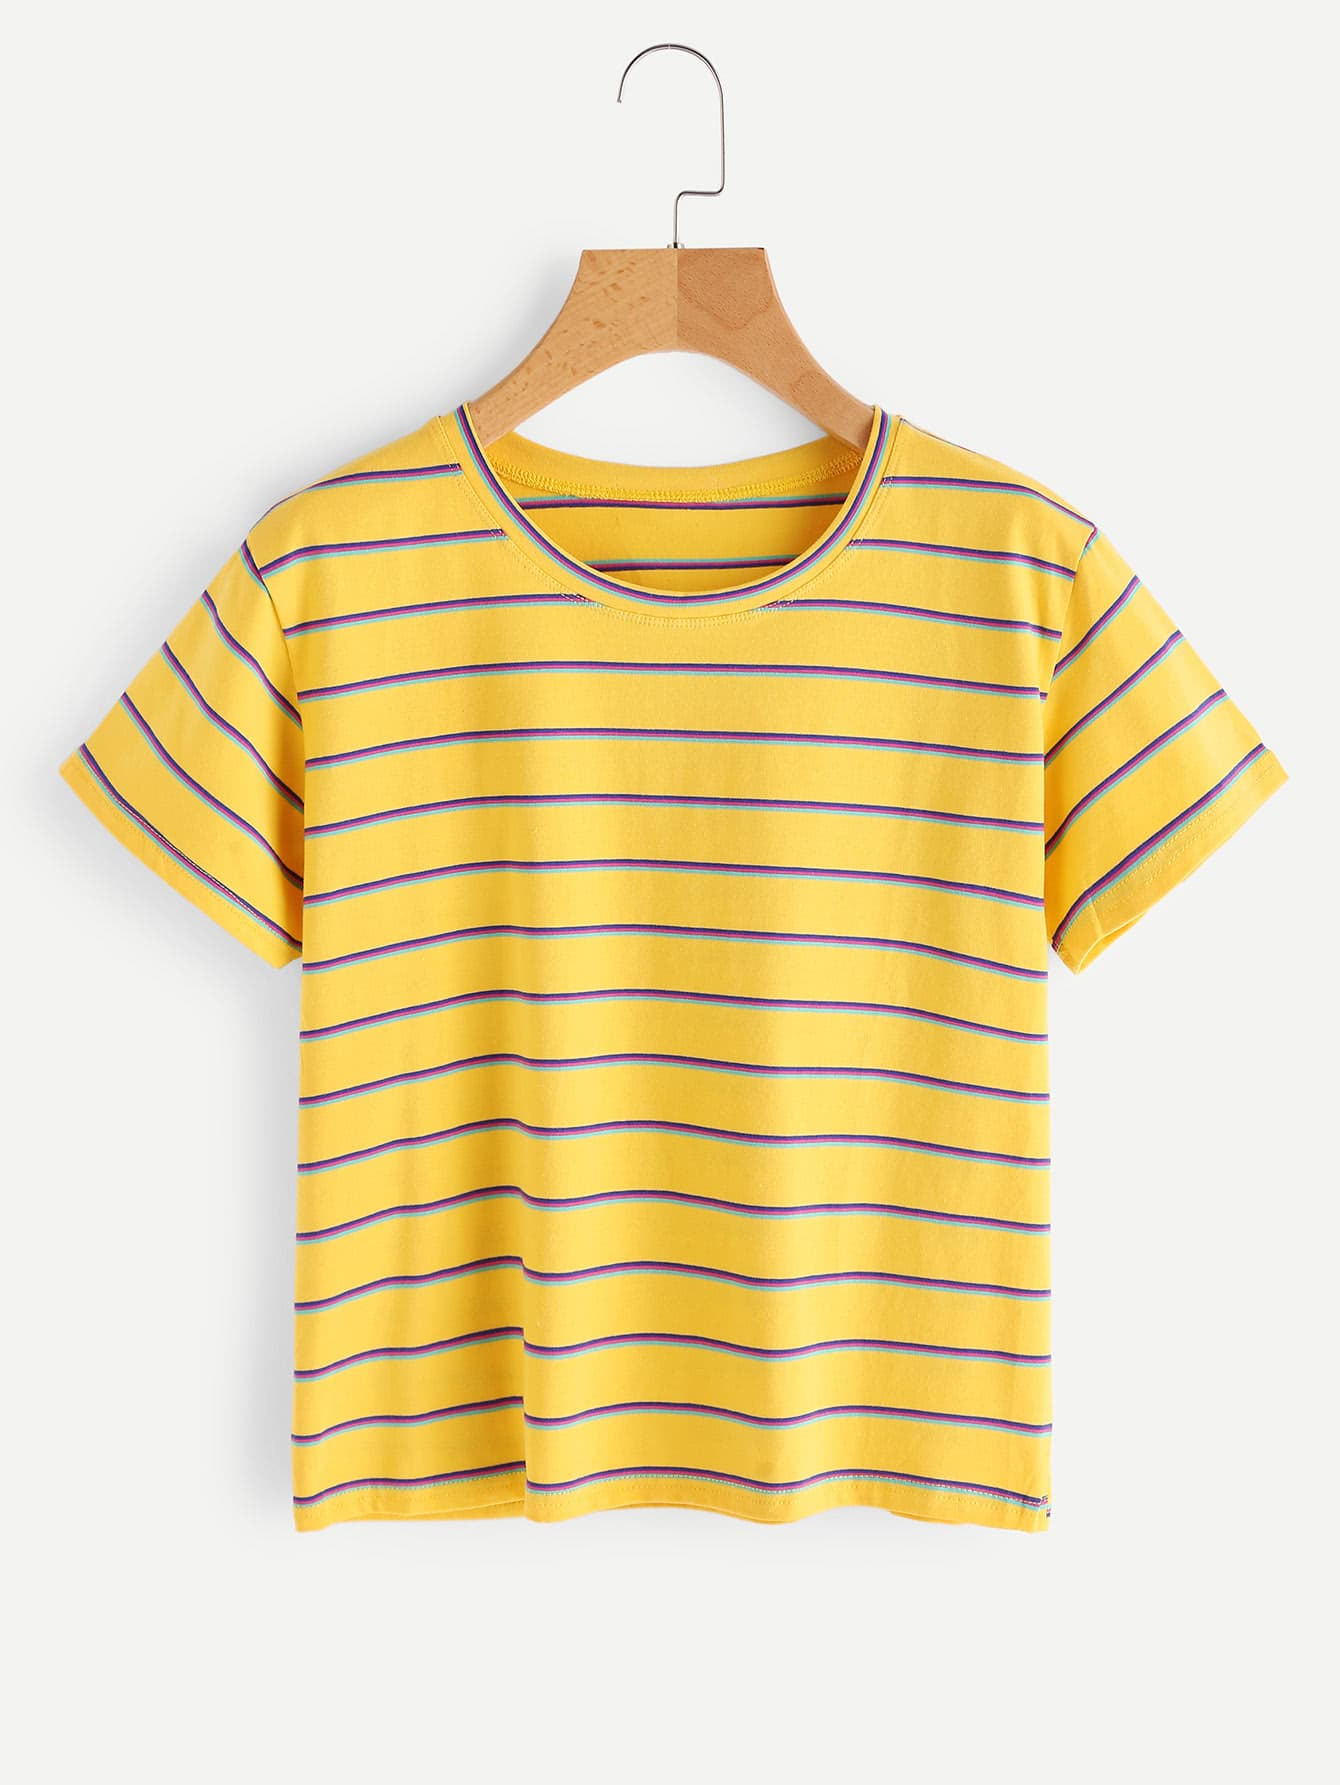 Sadler Stripe Knit Tee | Casual and cute with a flirty ruffled sleeve, this tee is an easy yet pretty piece that makes looking pulled-together a breeze. | Draper James JavaScript seems to .